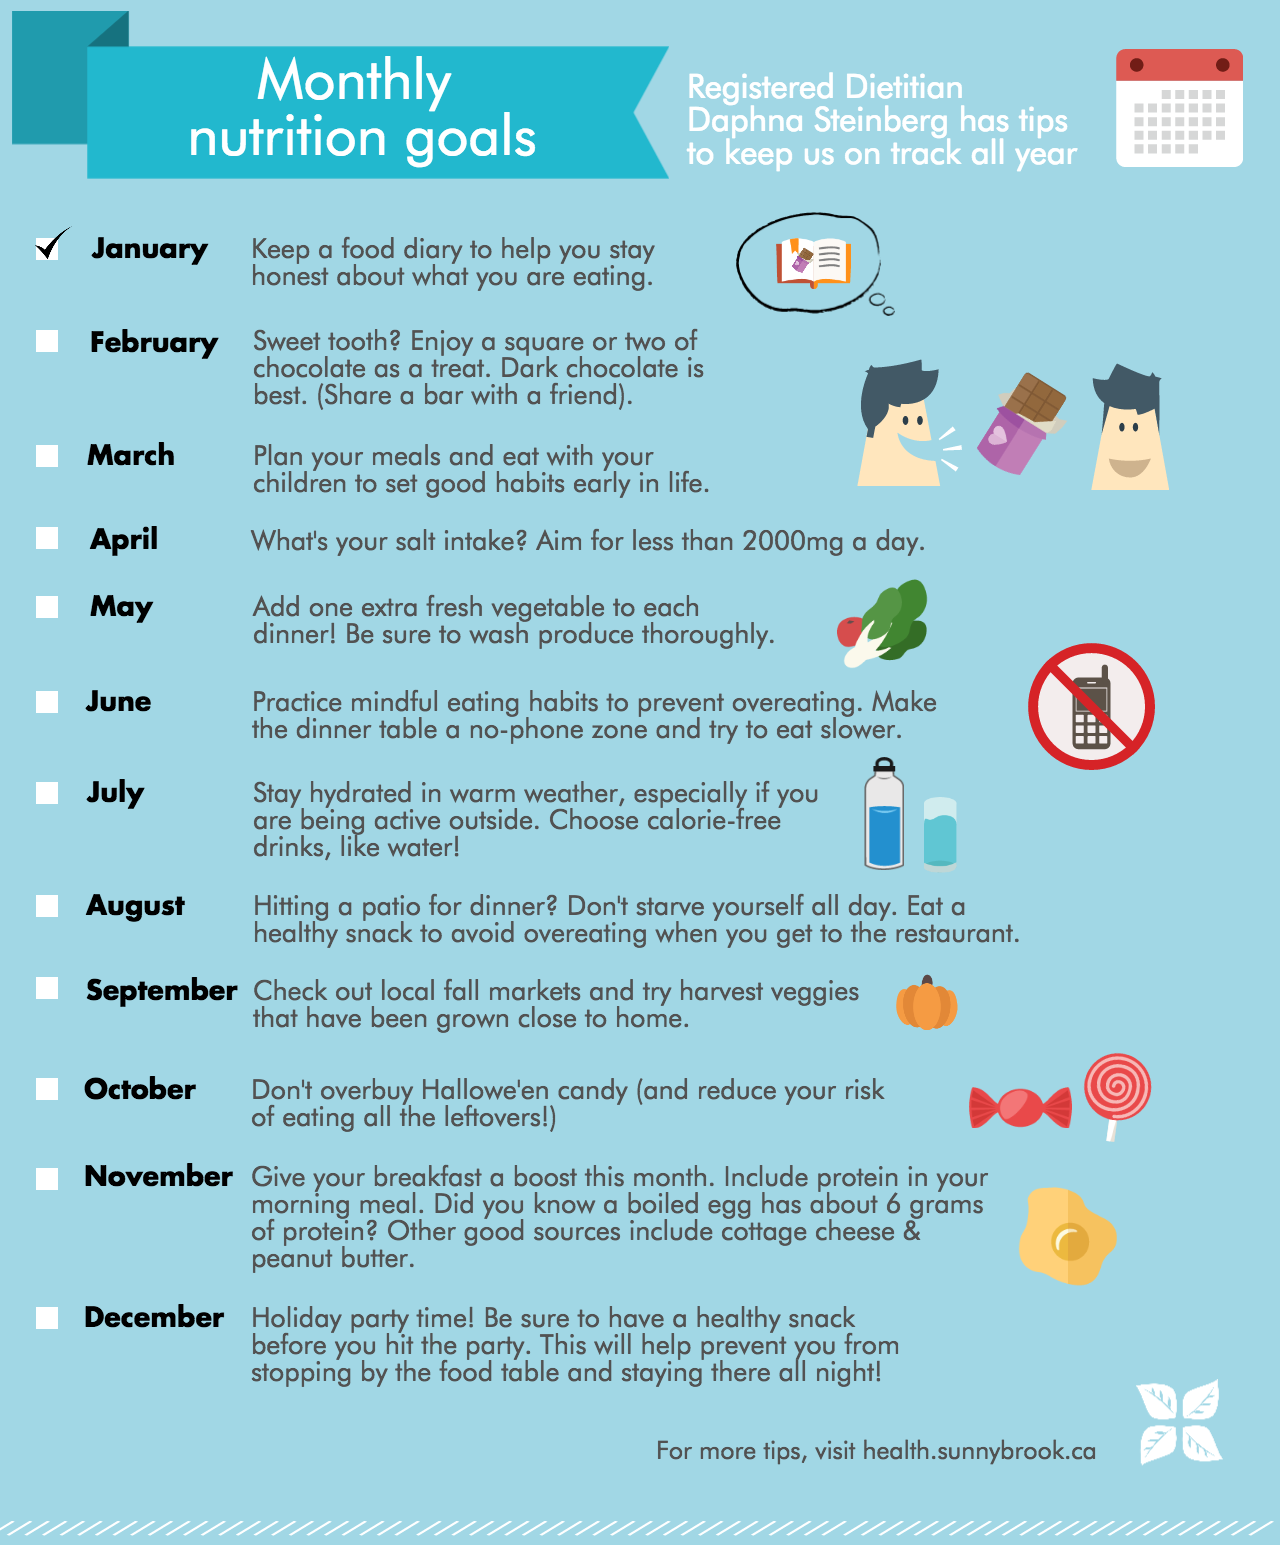 Monthly nutrition goals/tips - infographic